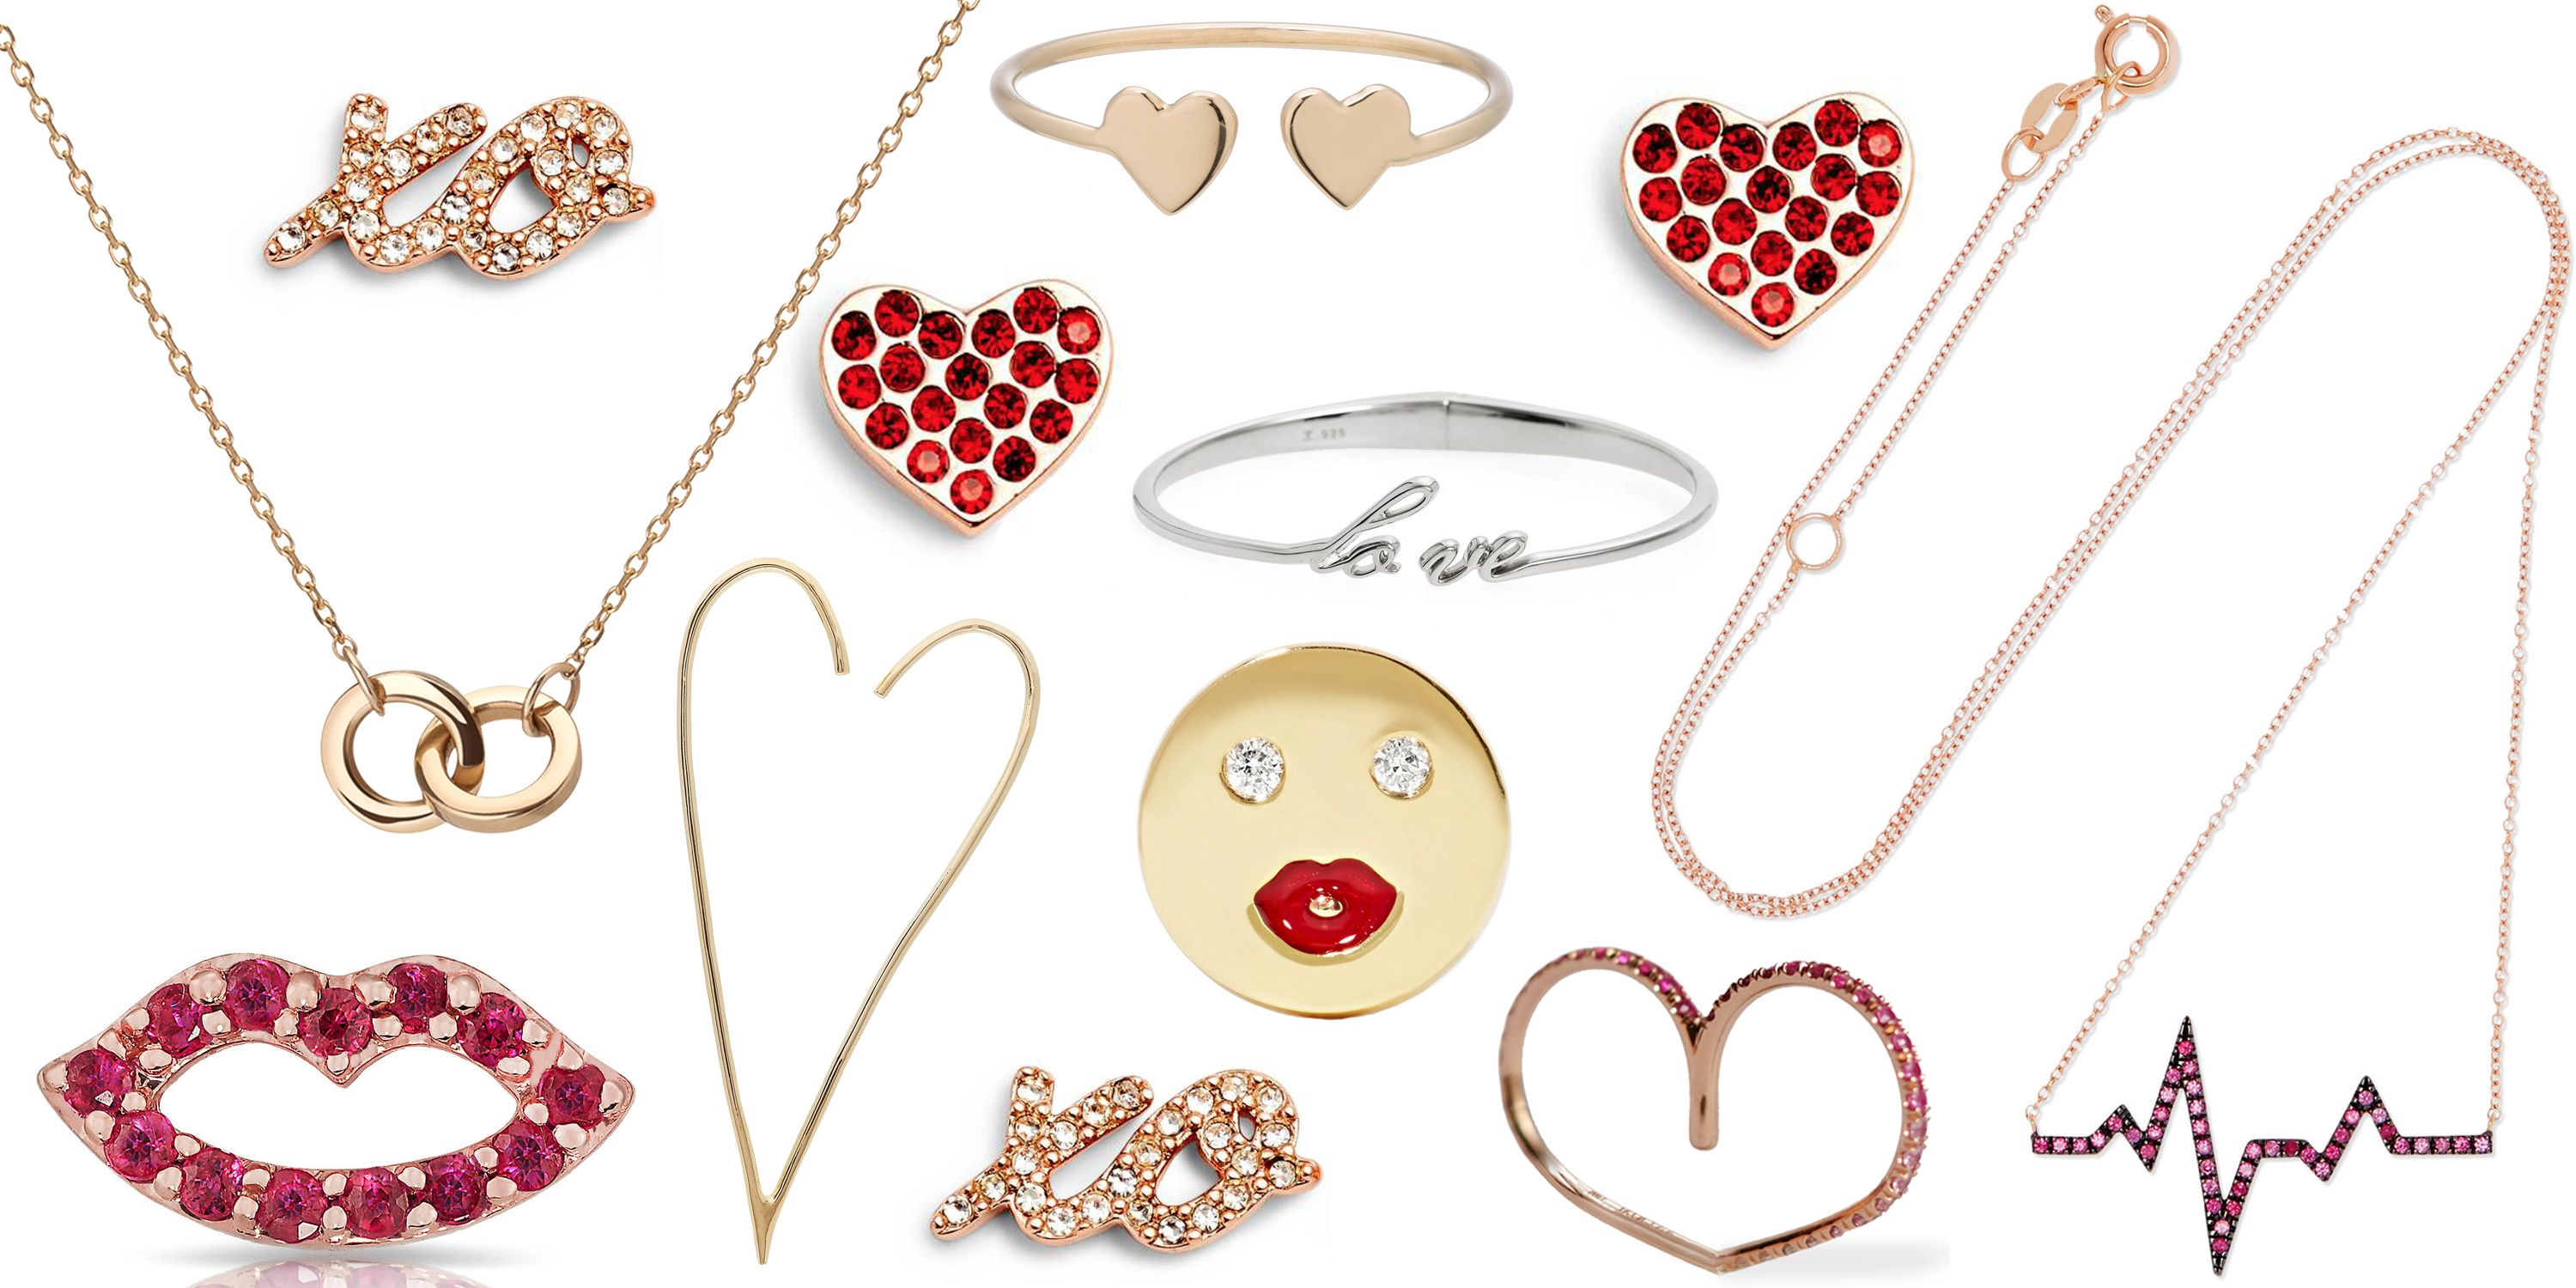 Best Jewelry To Give This Valentine S Day Valentine S Day Jewelry Gift Guide